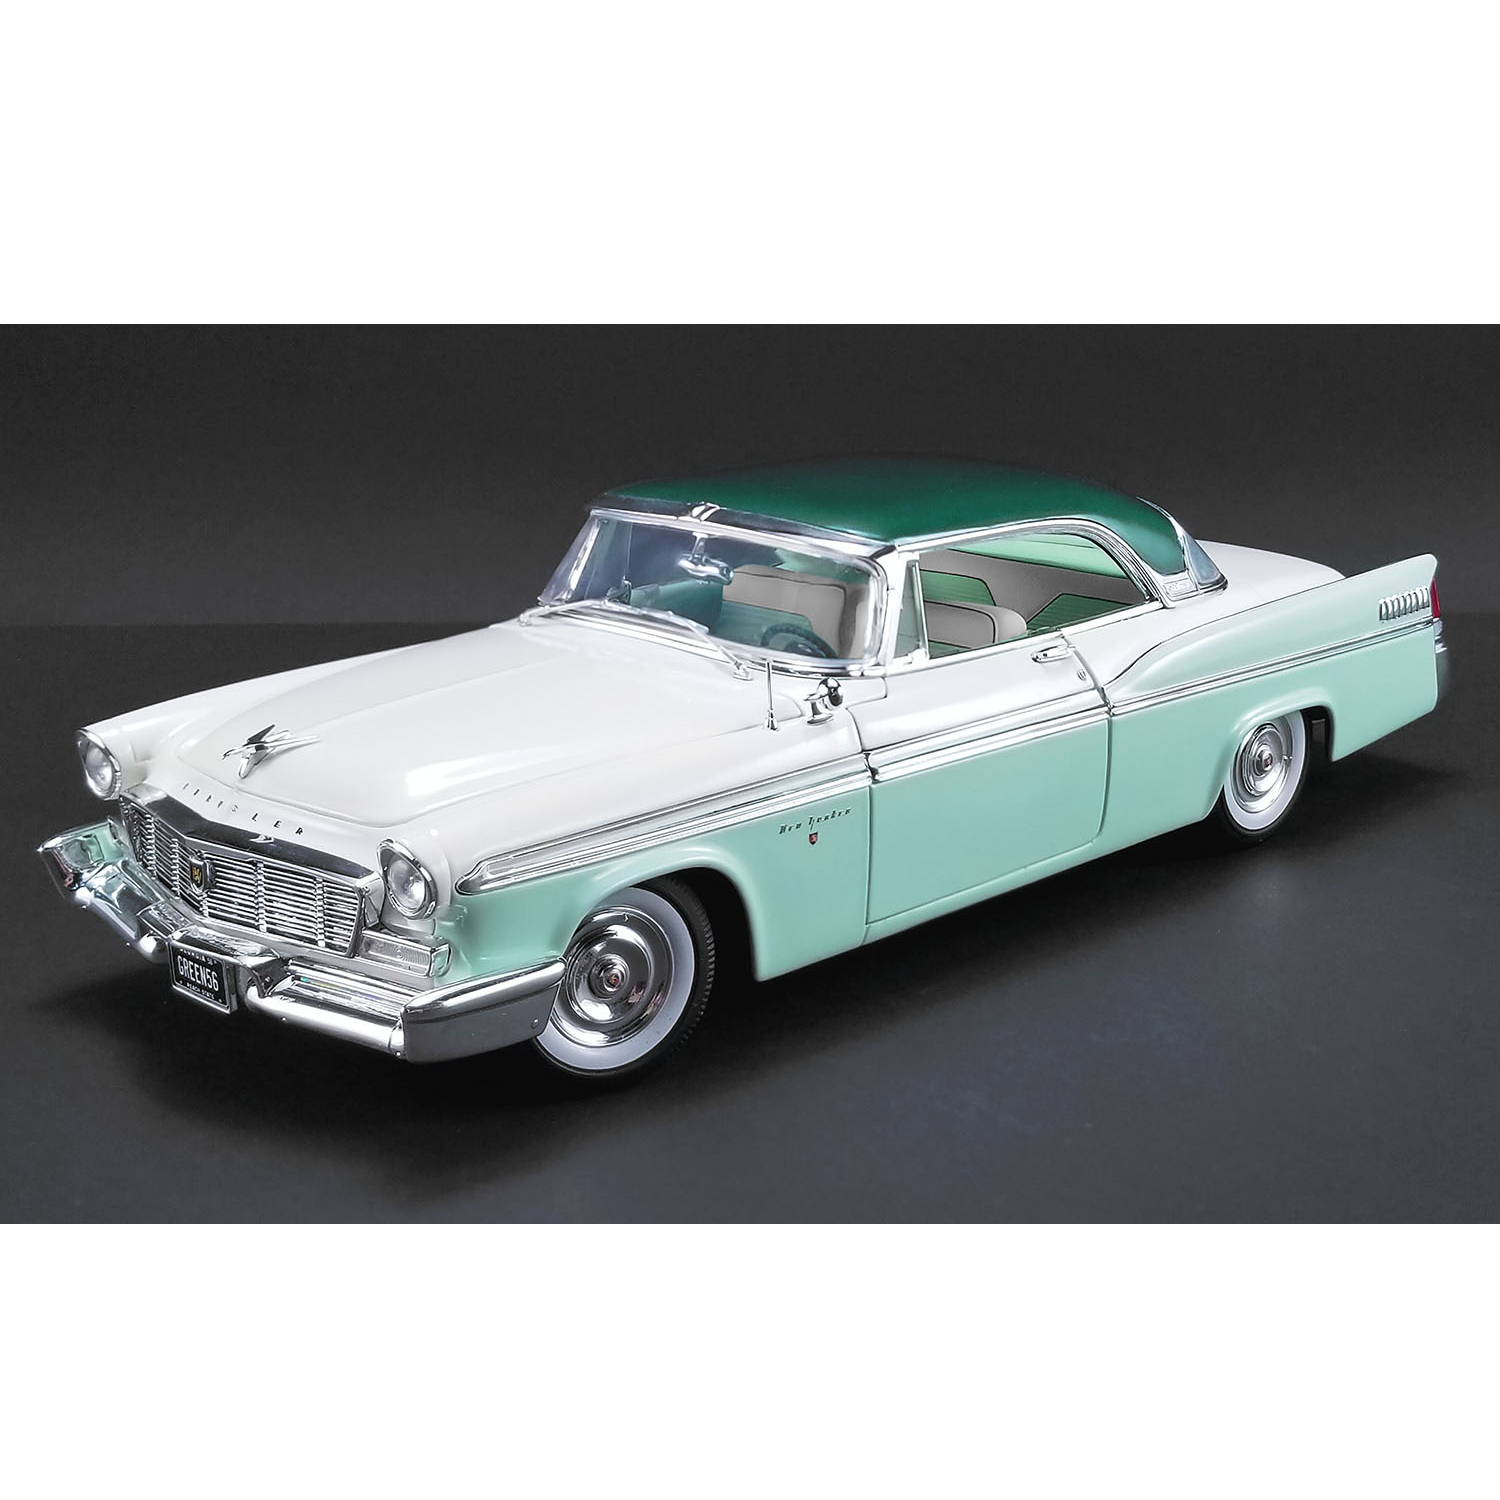 ACME - 1/18 Scale - Chrysler New Yorker St Regis (Surf Green Poly) in Cloud  White & Mint Green Diecast Scale Model Replica